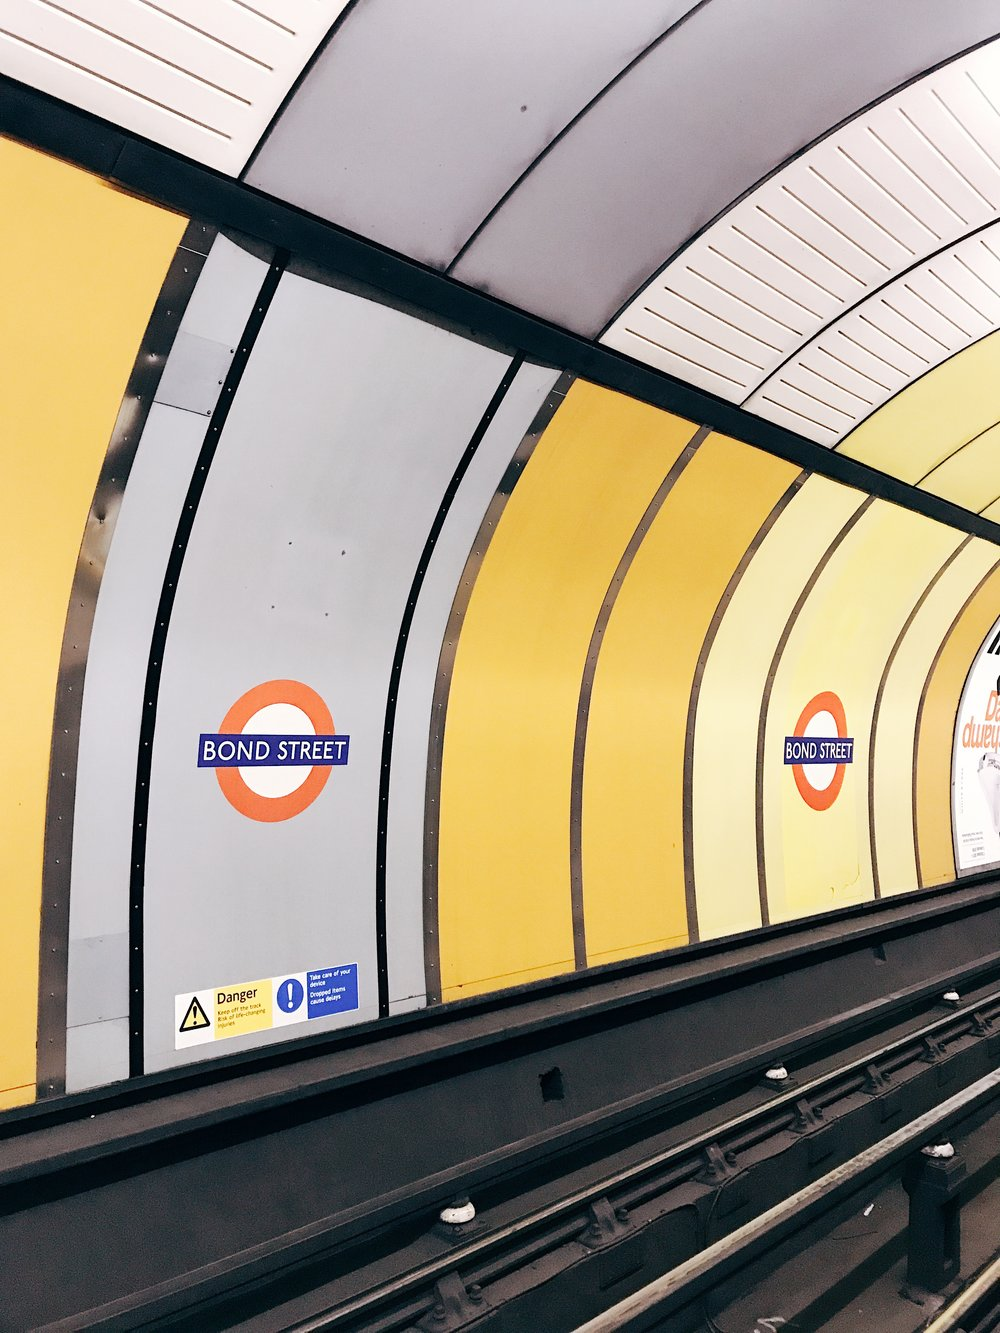 Image: Reasons to Visit London - Many Images to Inspire You to Visit London - London Tube